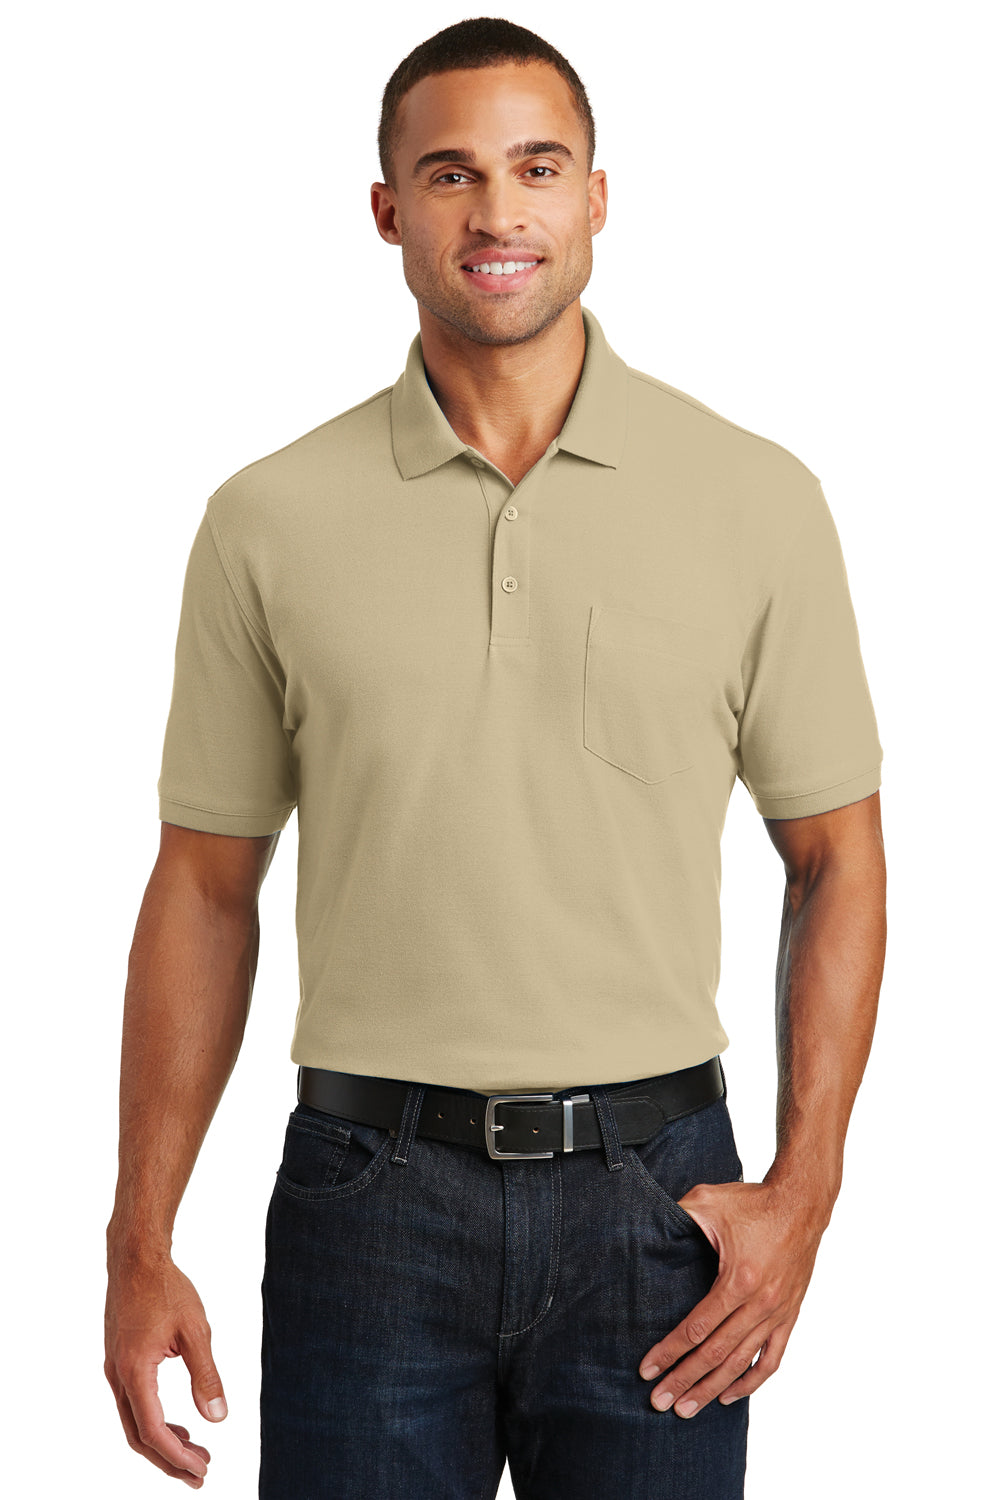 Port Authority K100P Mens Core Classic Short Sleeve Polo Shirt w/ Pocket Wheat Front